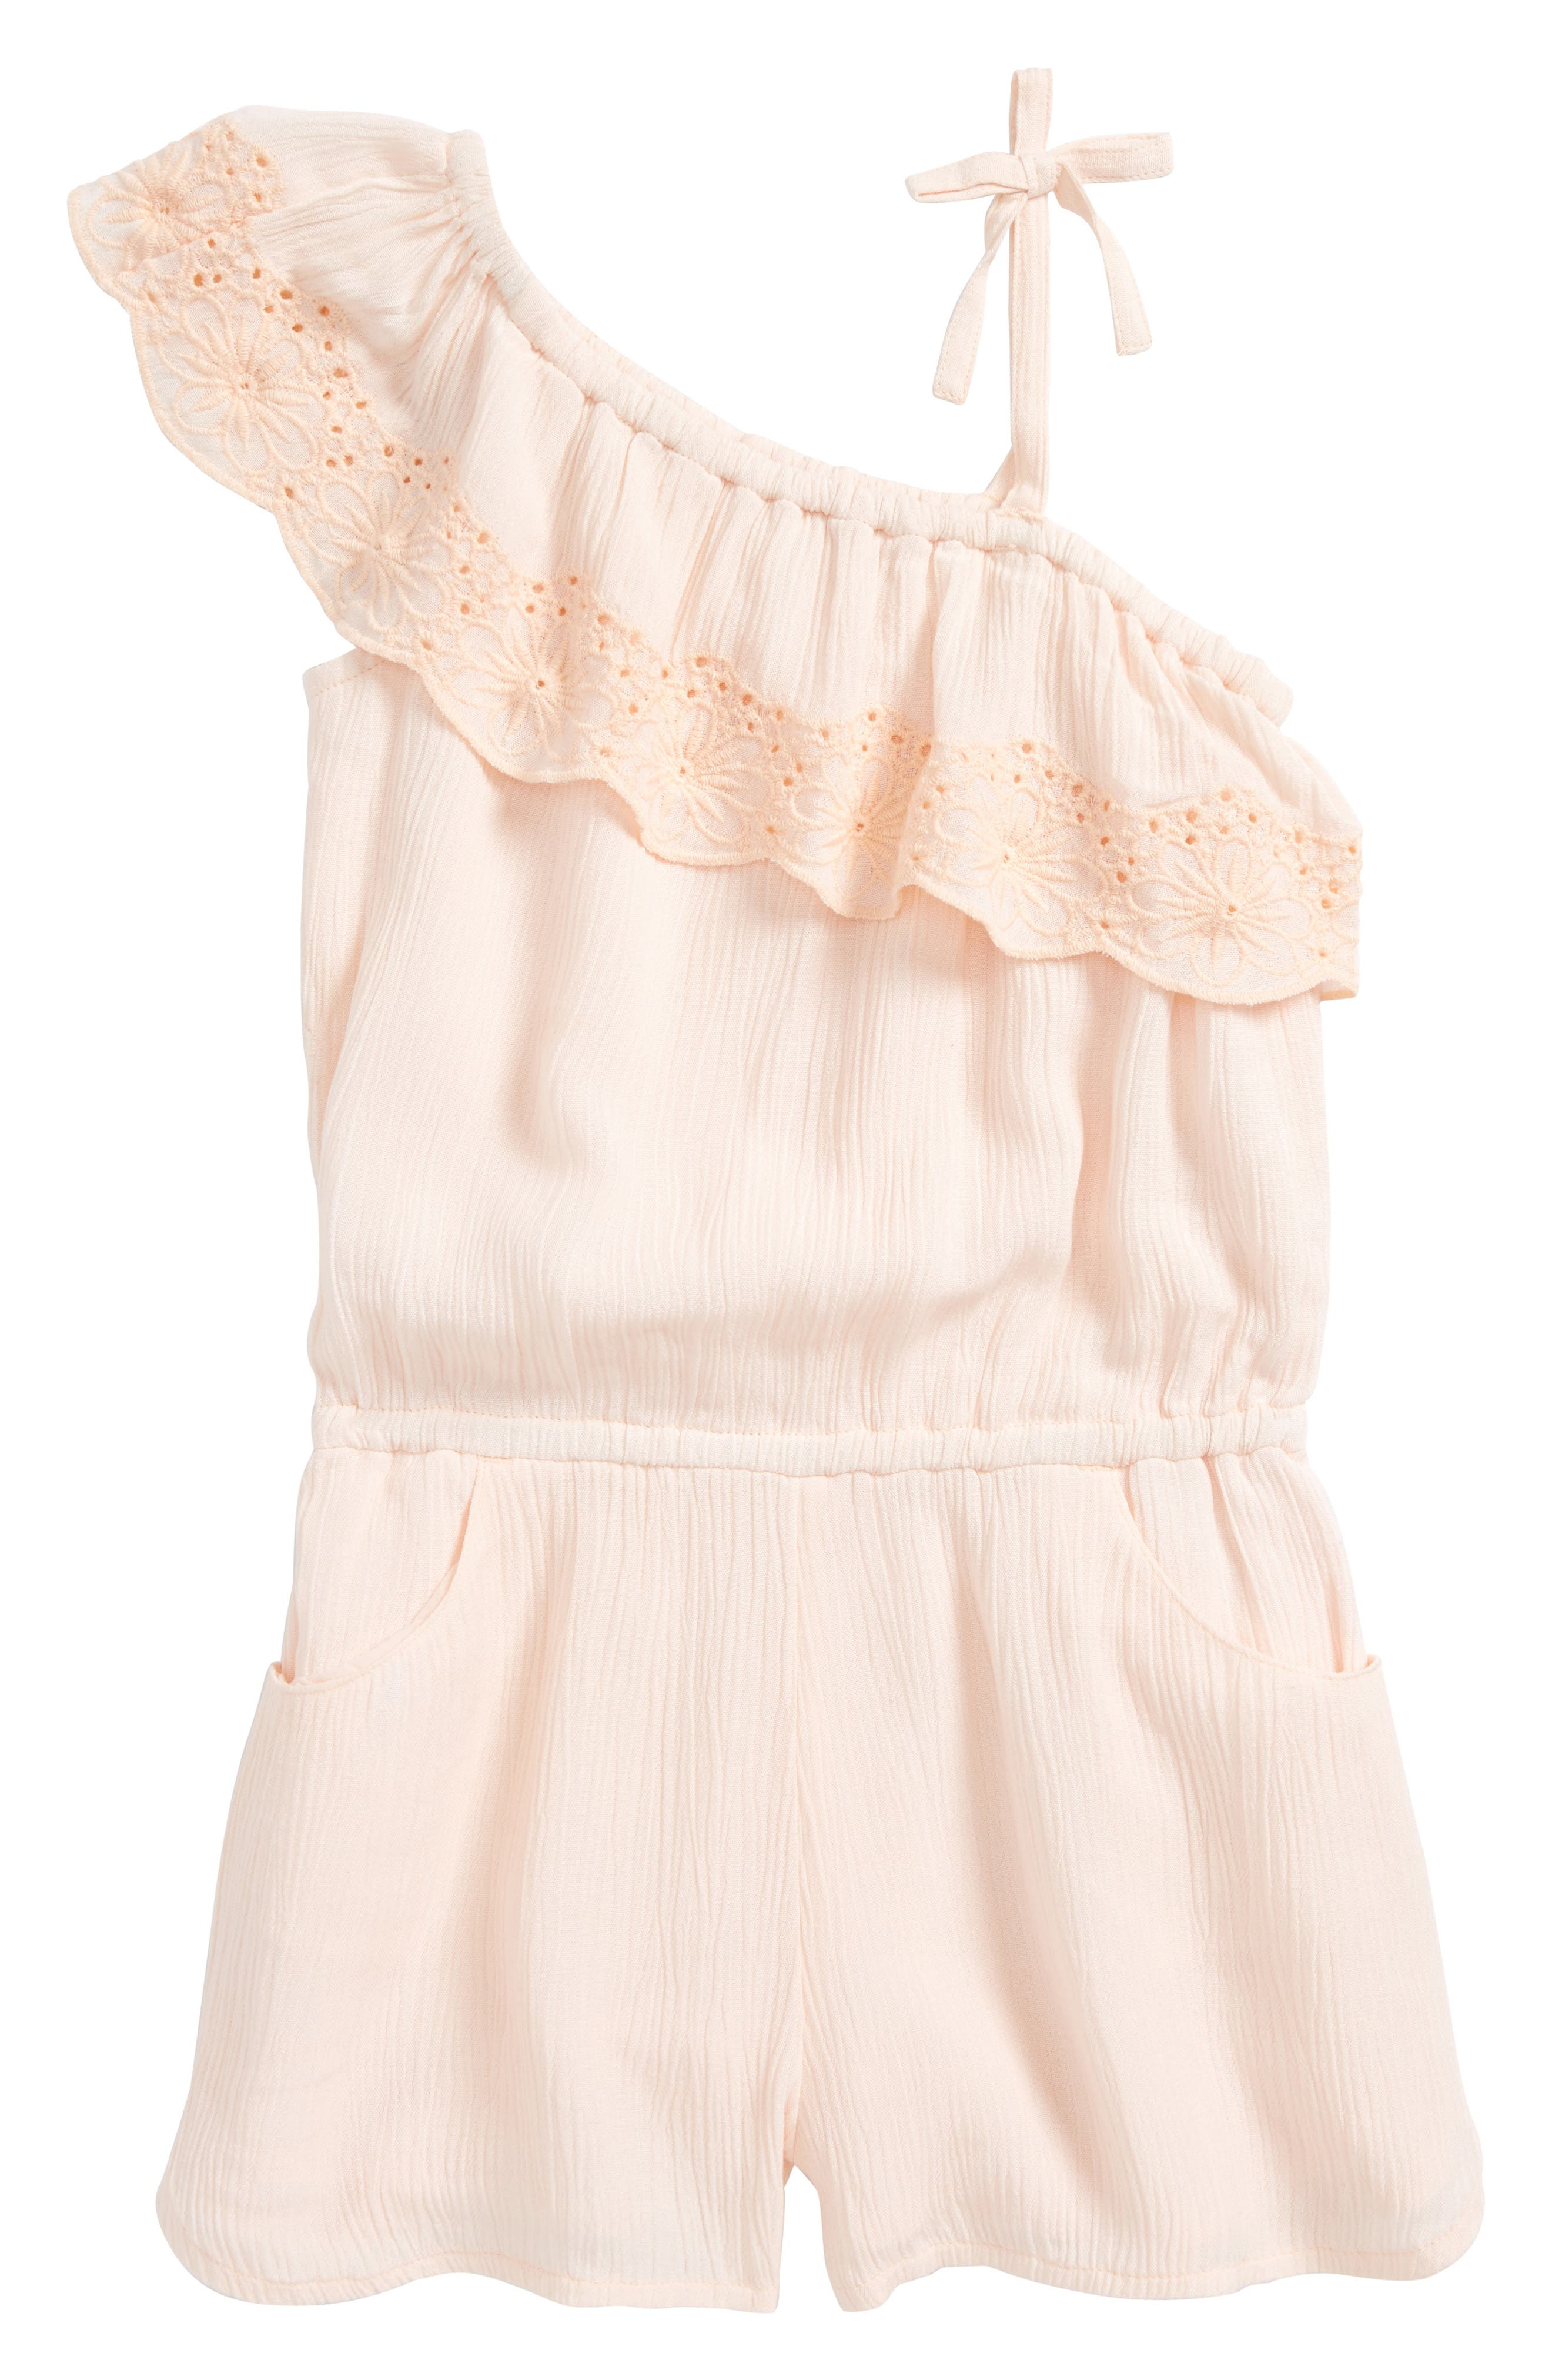 Lanai One-Shoulder Romper,                         Main,                         color, PEACH BLUSH